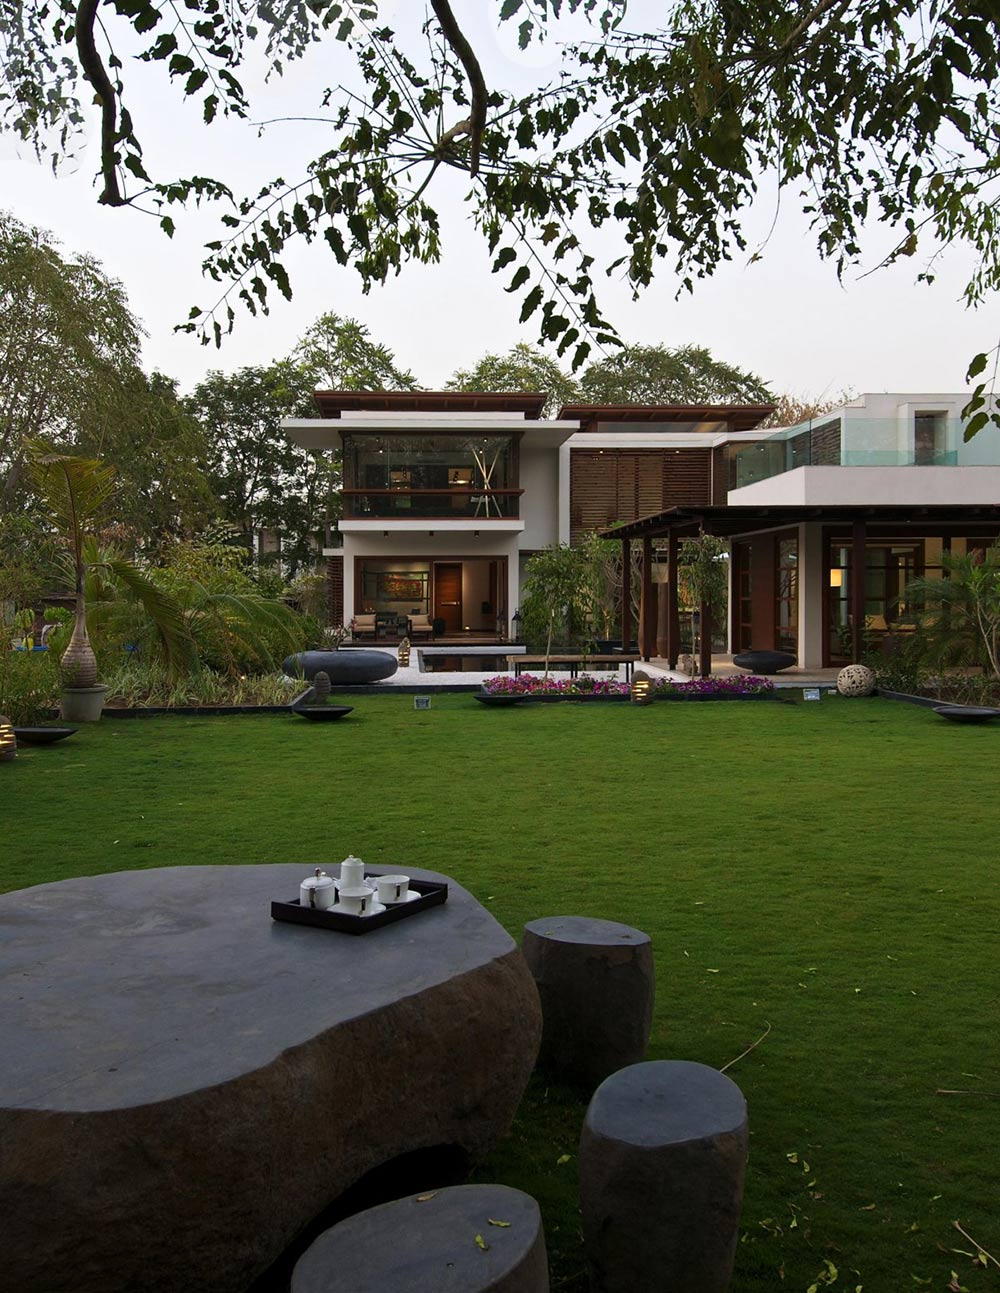 Outdoor Table, Garden, Courtyard House by Hiren Patel Architects